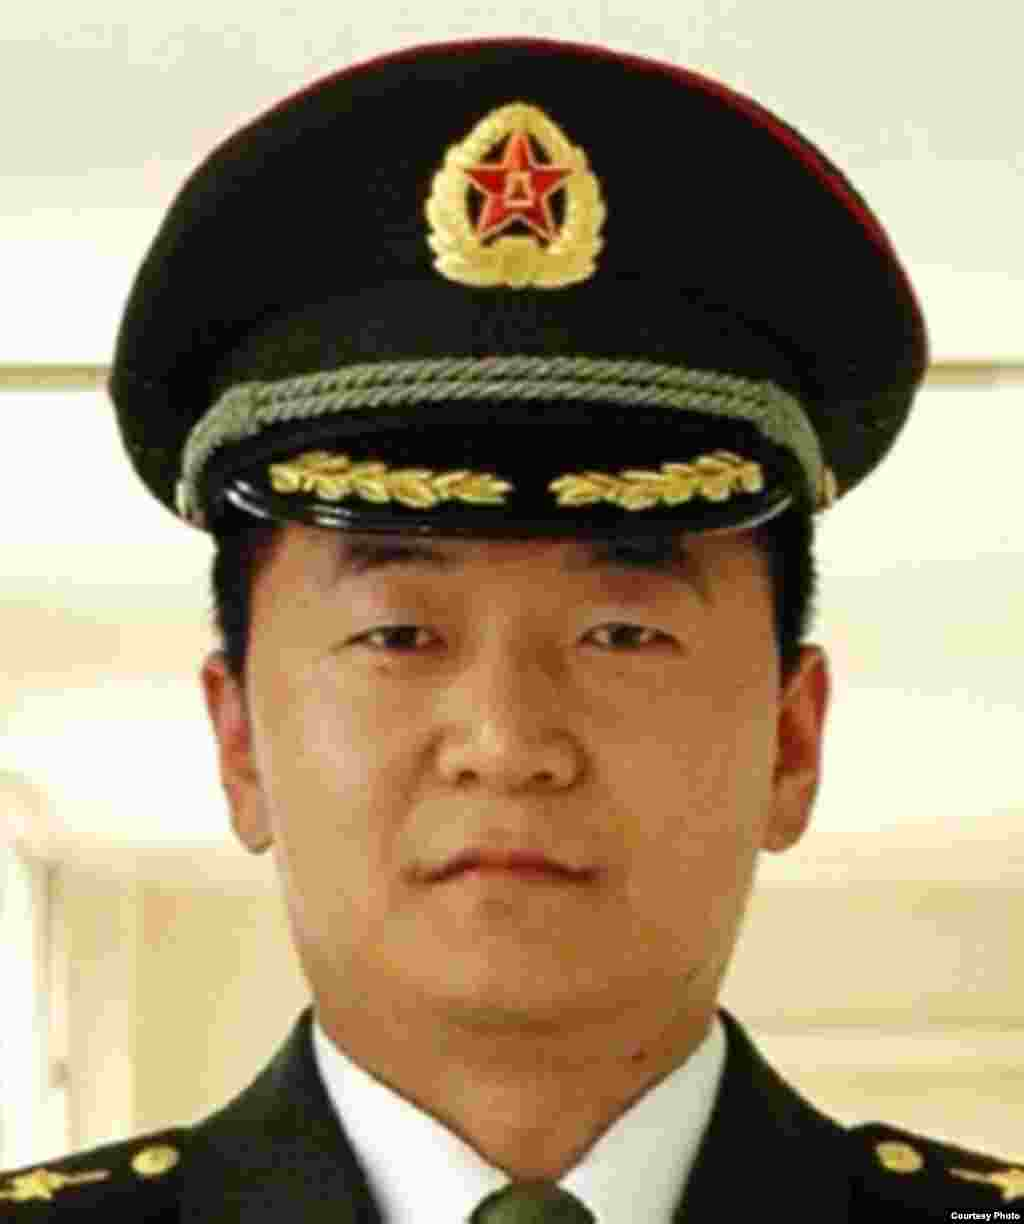 Sun Kailiang, from China's Third Department of the General Staff Department of the People's LIberation Army (3PLA), Second Bureau, Third Office, Military Unit Cover Designator (MUCD) 61398. (FBI photo).